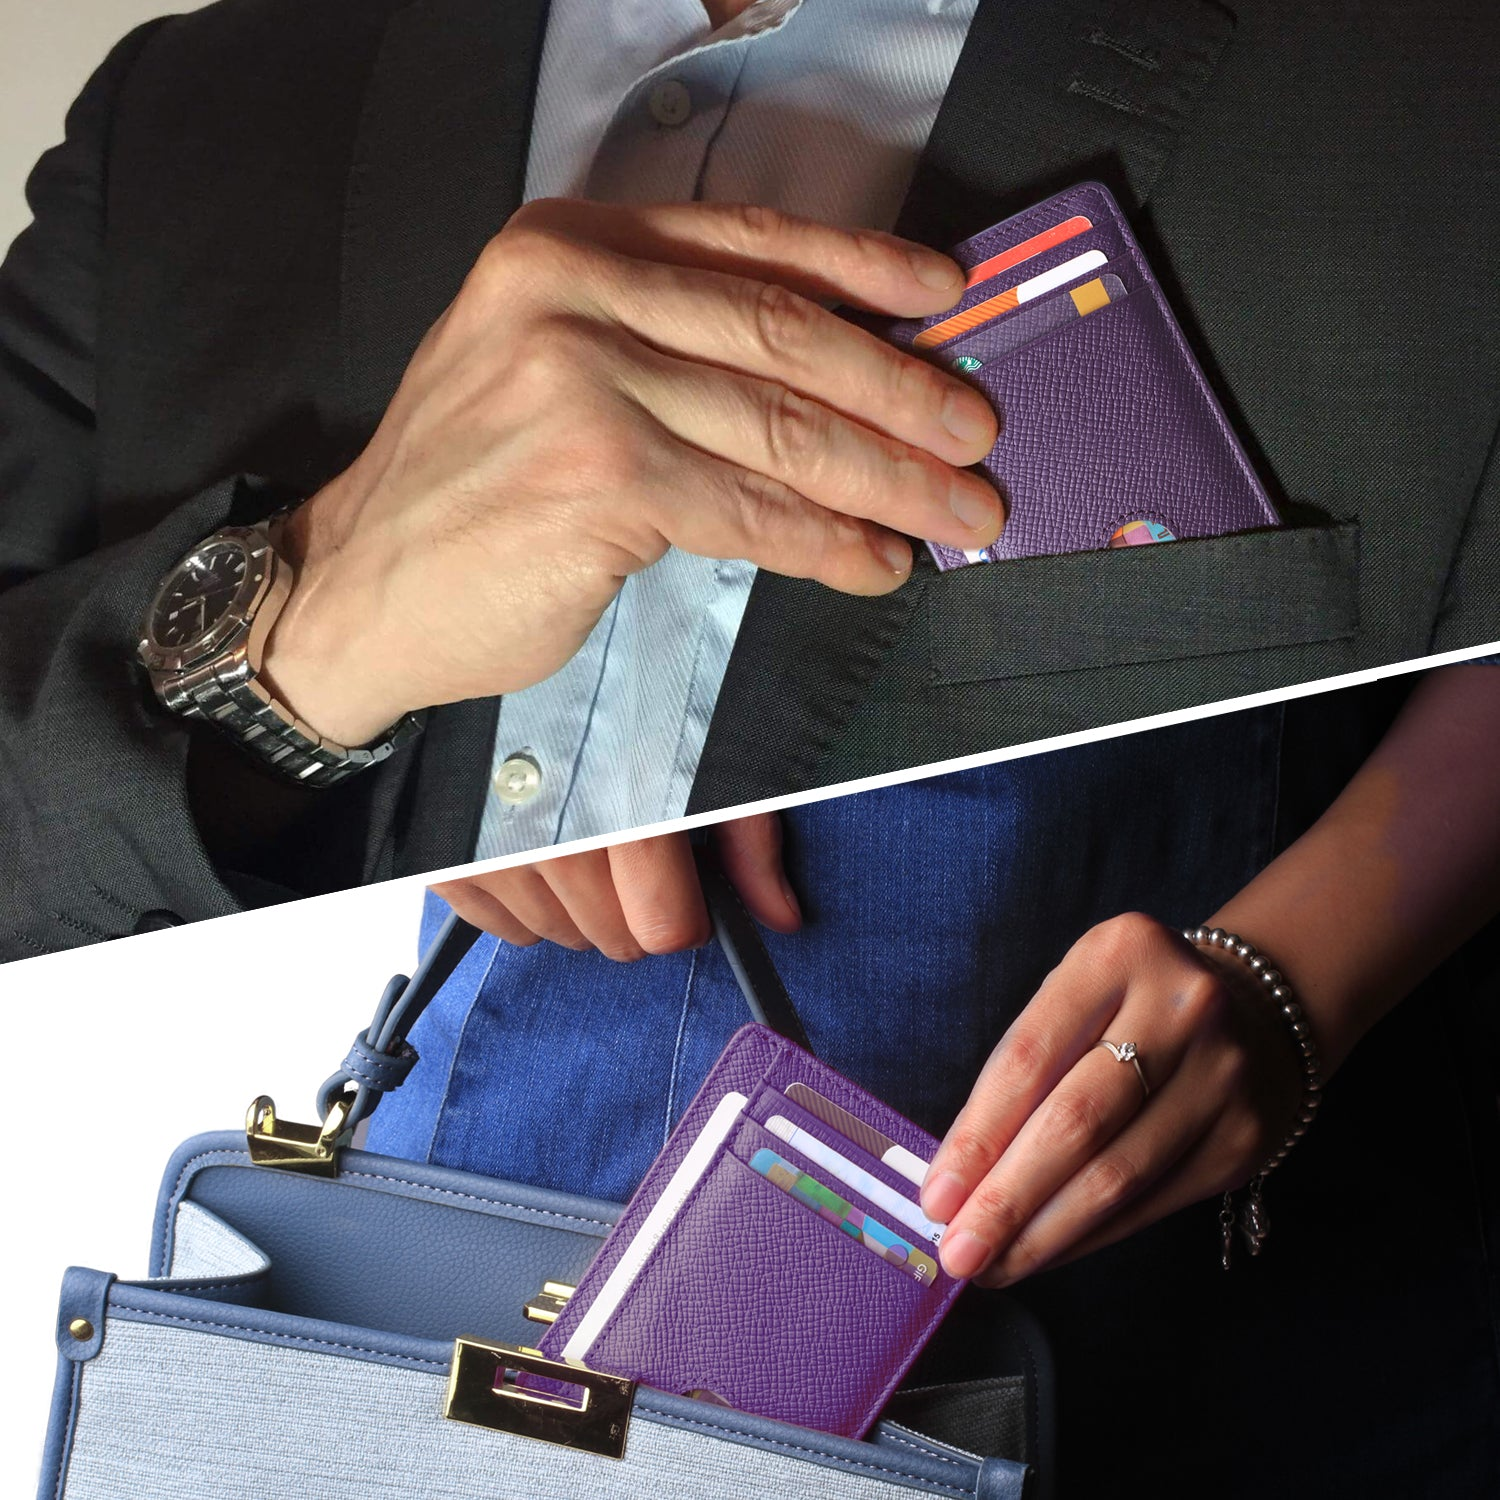 Slim Minimalist Front Pocket RFID Blocking Leather Wallets for Men & Women Purple - Borgasets